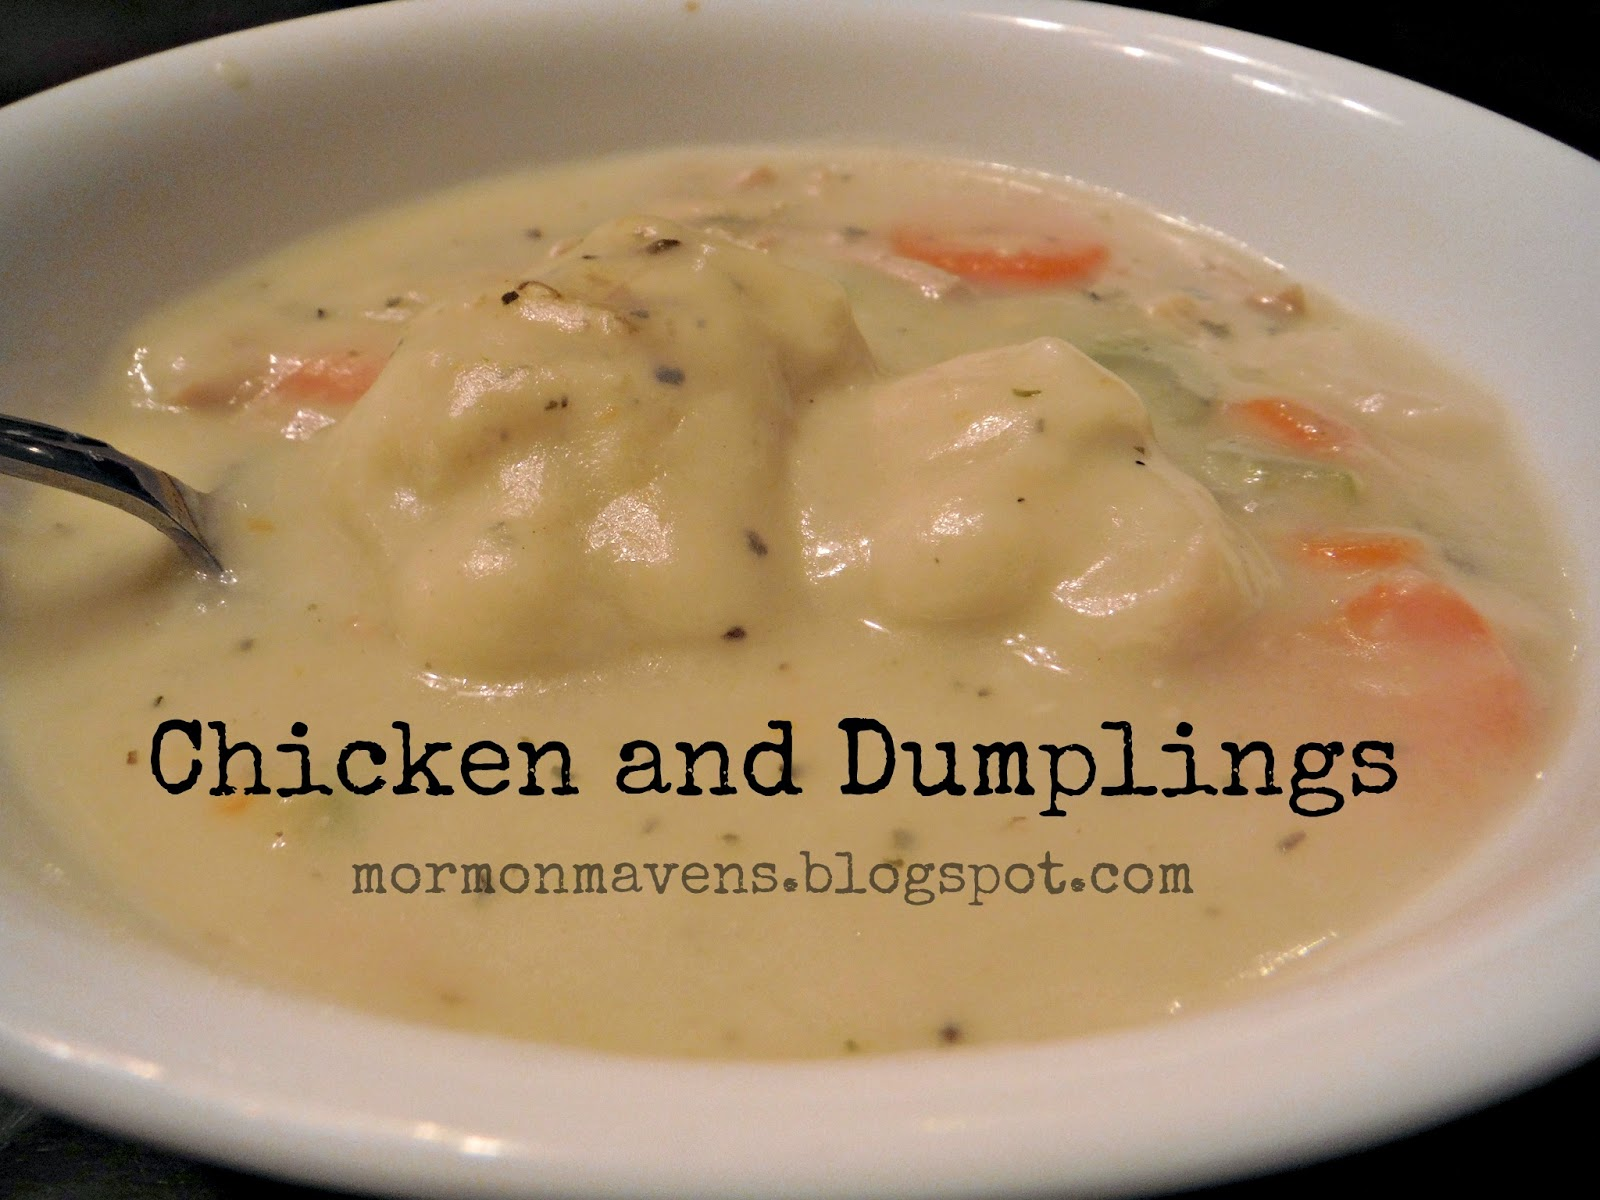 Mormon Mavens in the Kitchen: Chicken and Dumplings